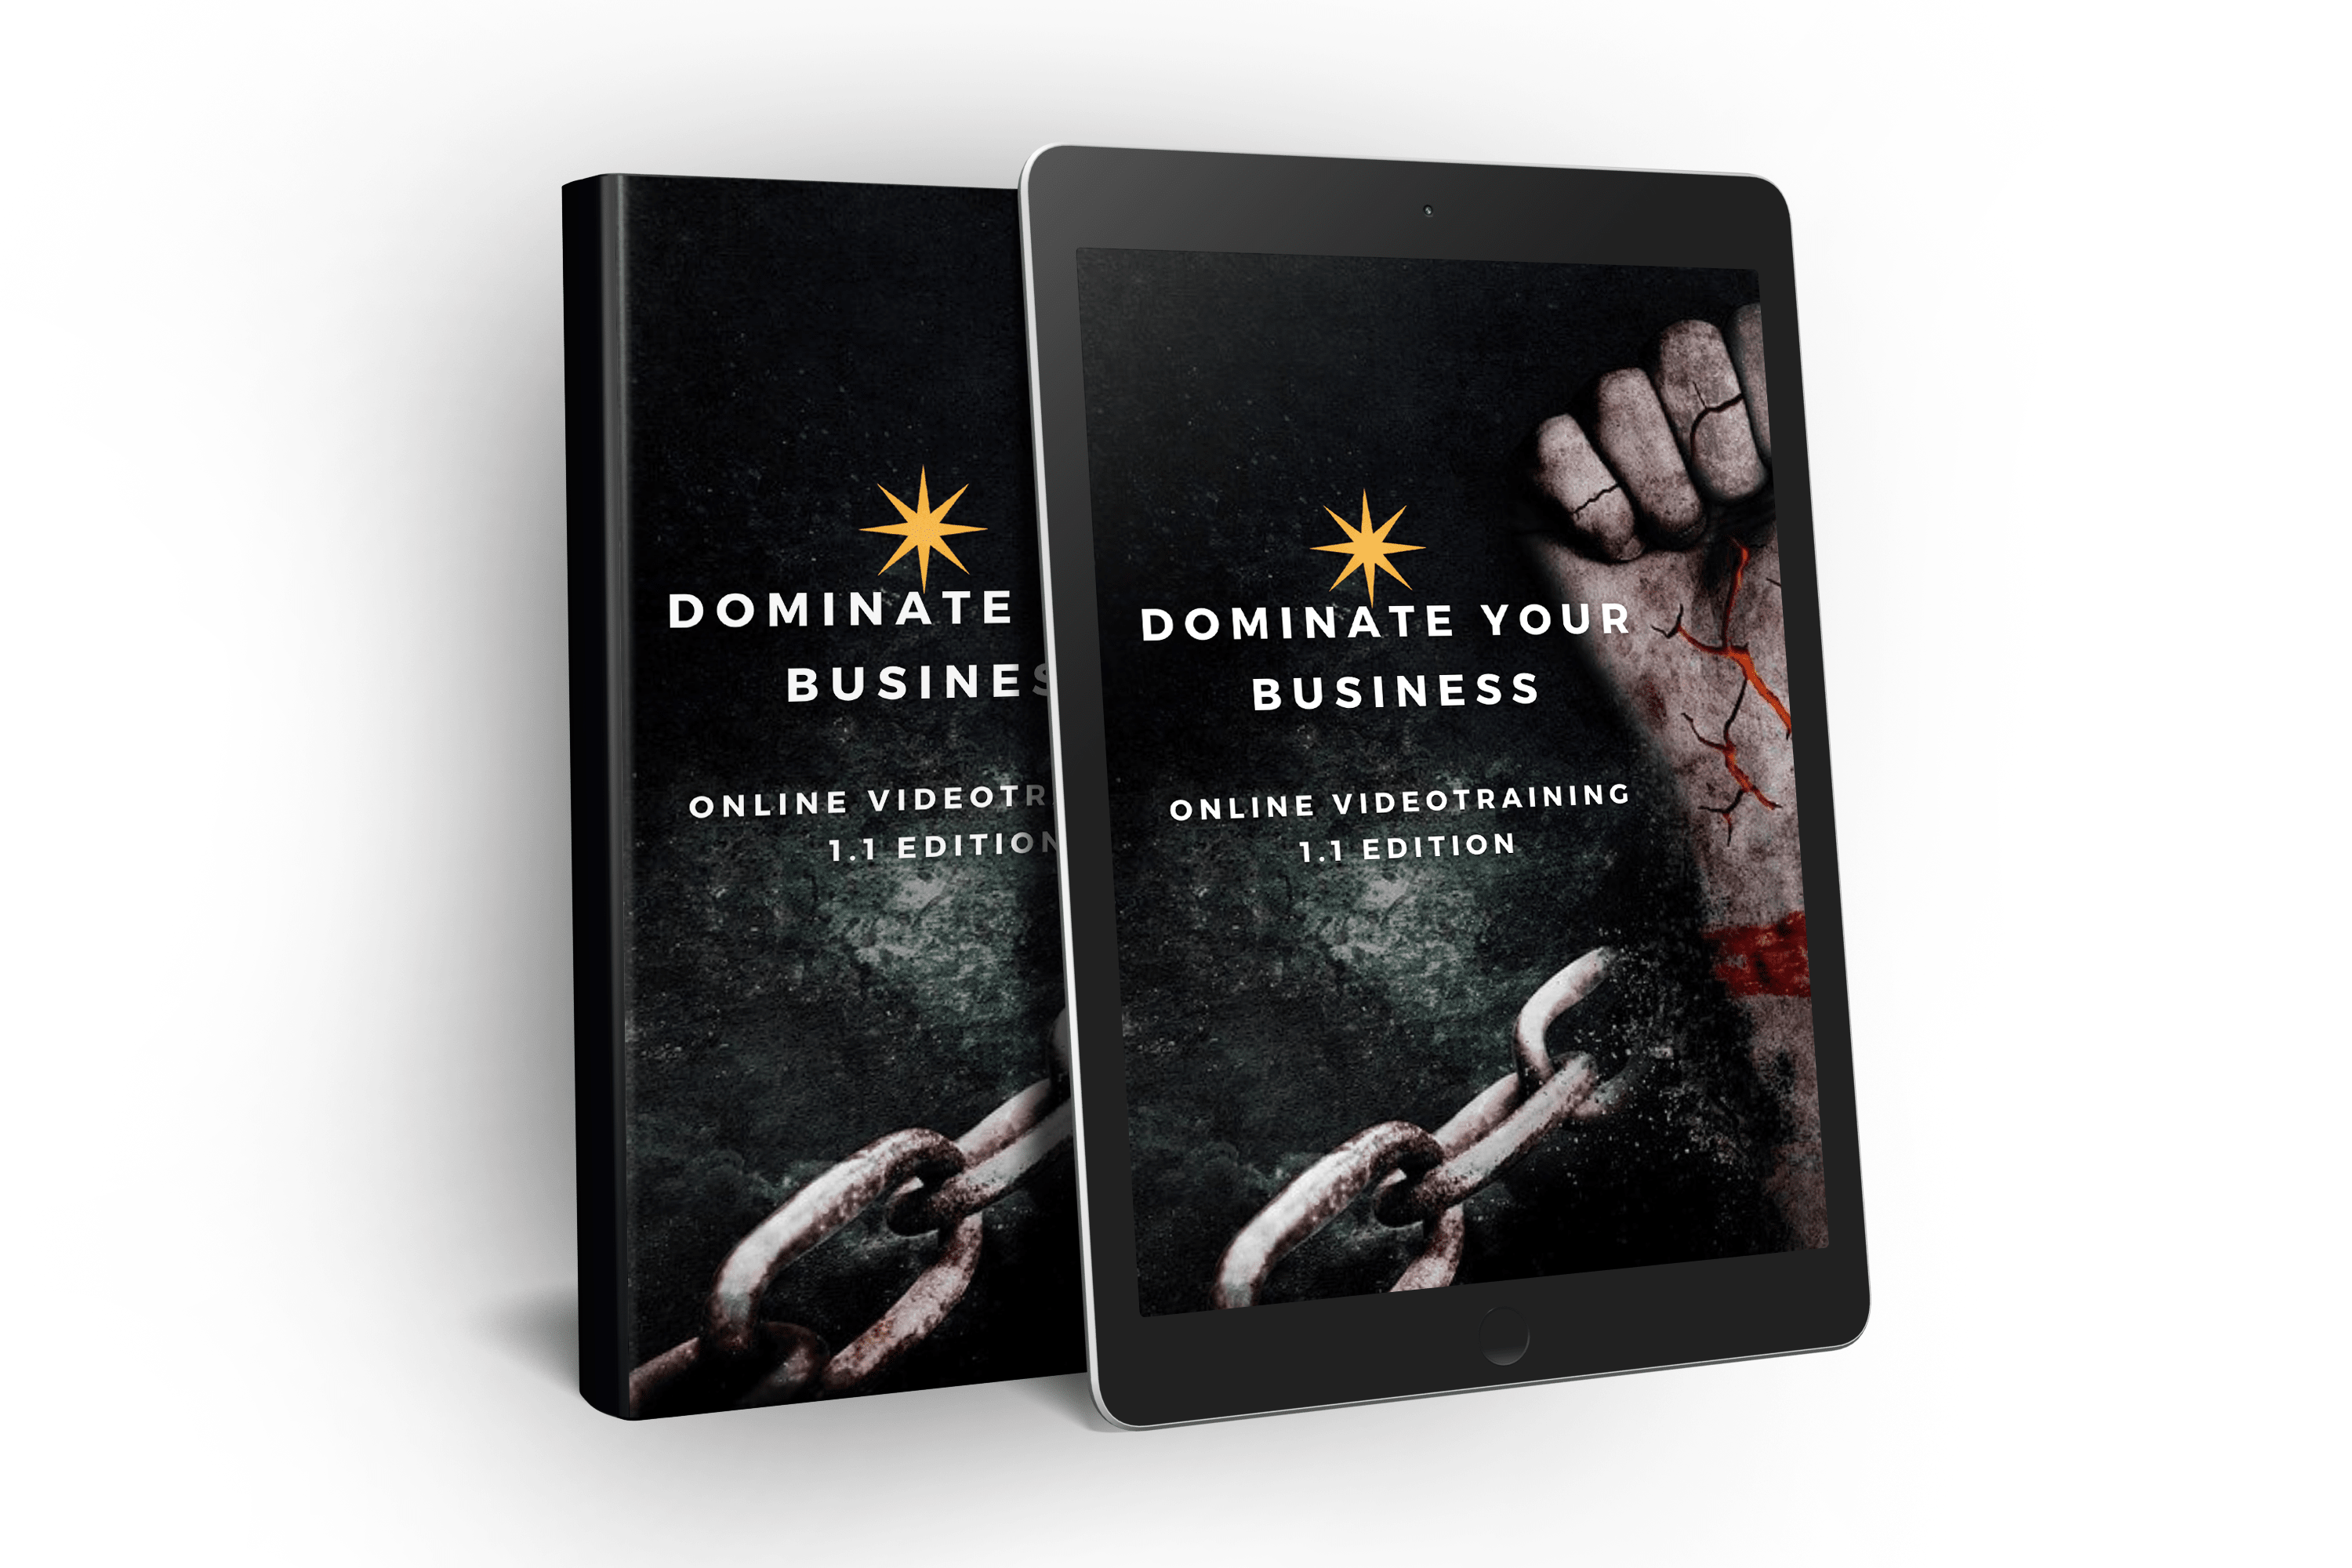 Dominate Your Business Online Training 1.1 Edition